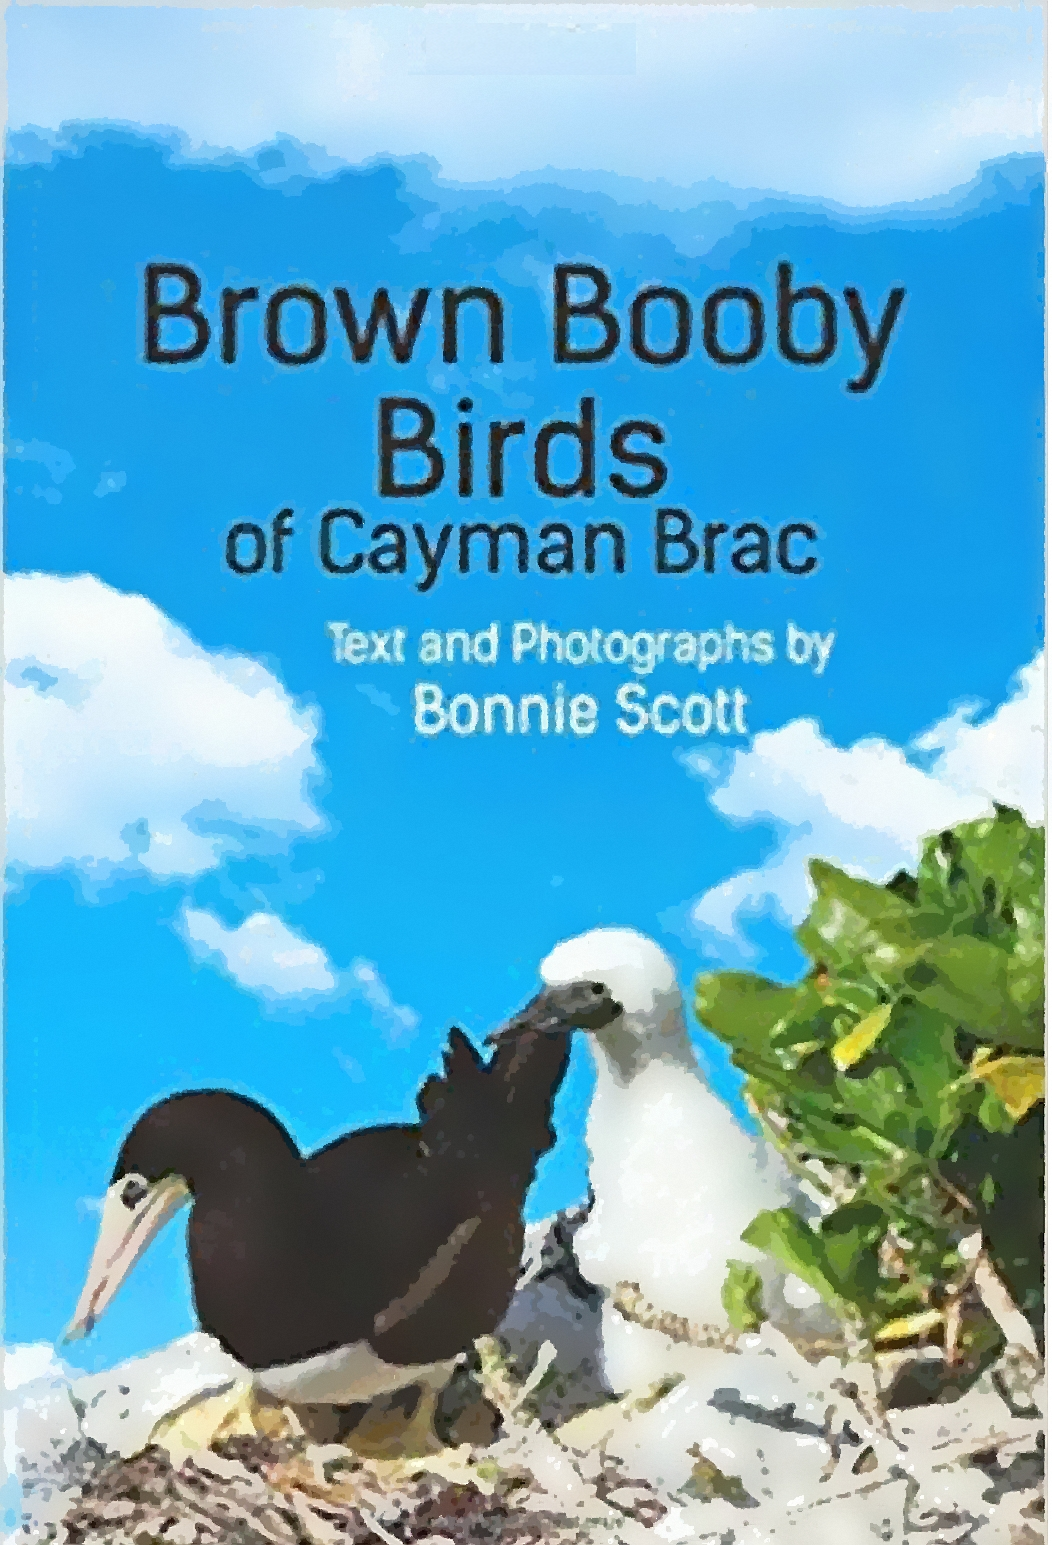 a book cover with blue sky and white clouds, with Brown Booby birds on the beach next to a bush